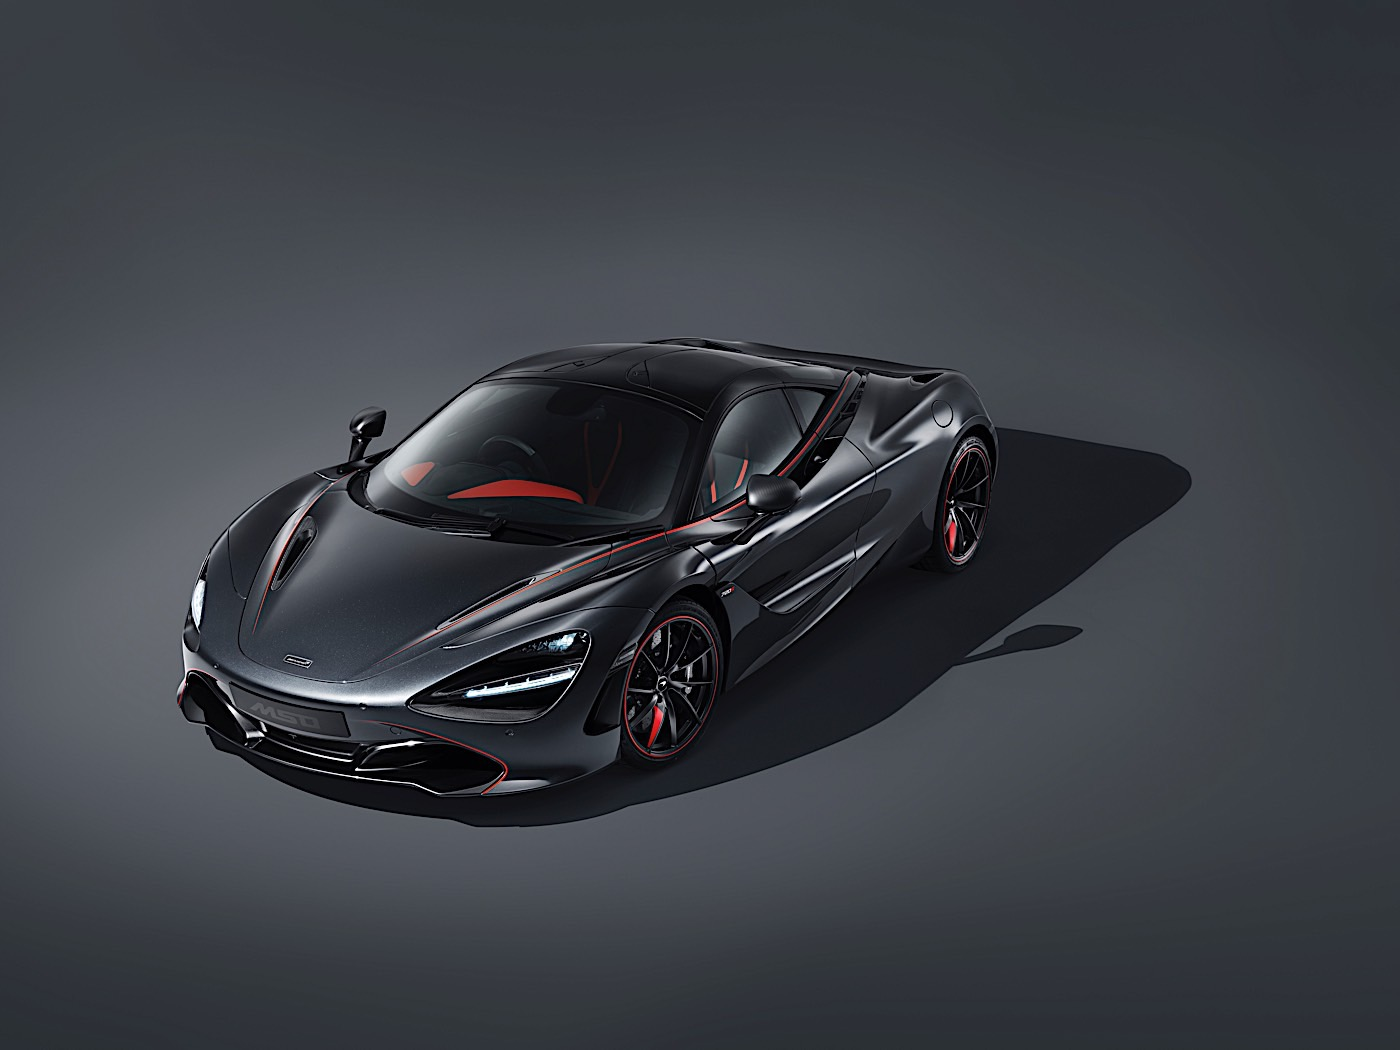 mclaren-720sgoes-stealth-with-new-mso-visual-theme-130261_1